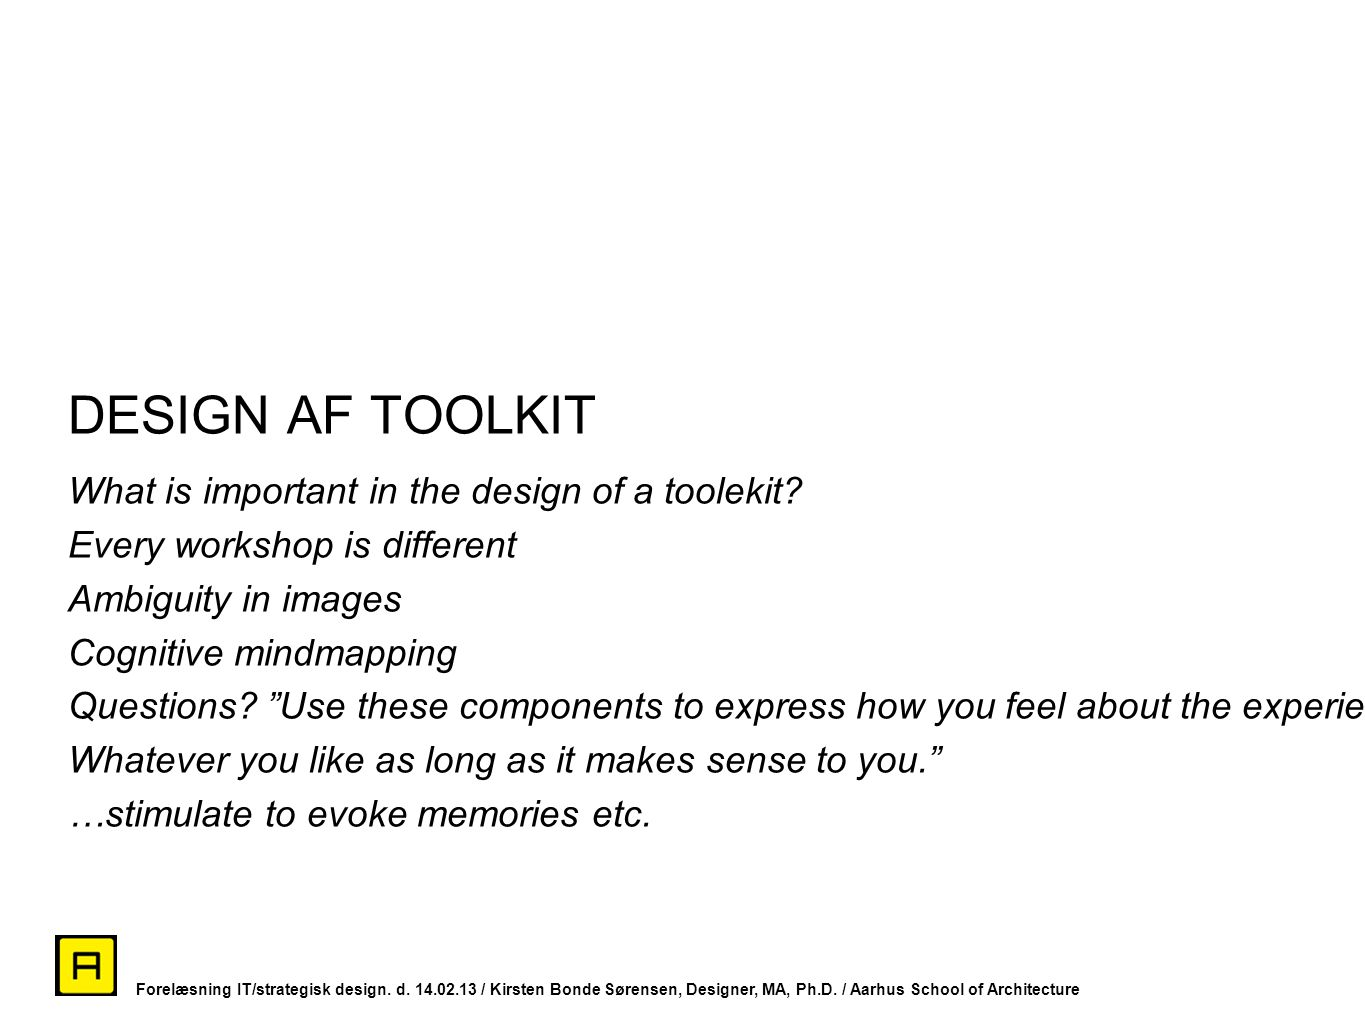 DESIGN AF TOOLKIT What is important in the design of a toolekit